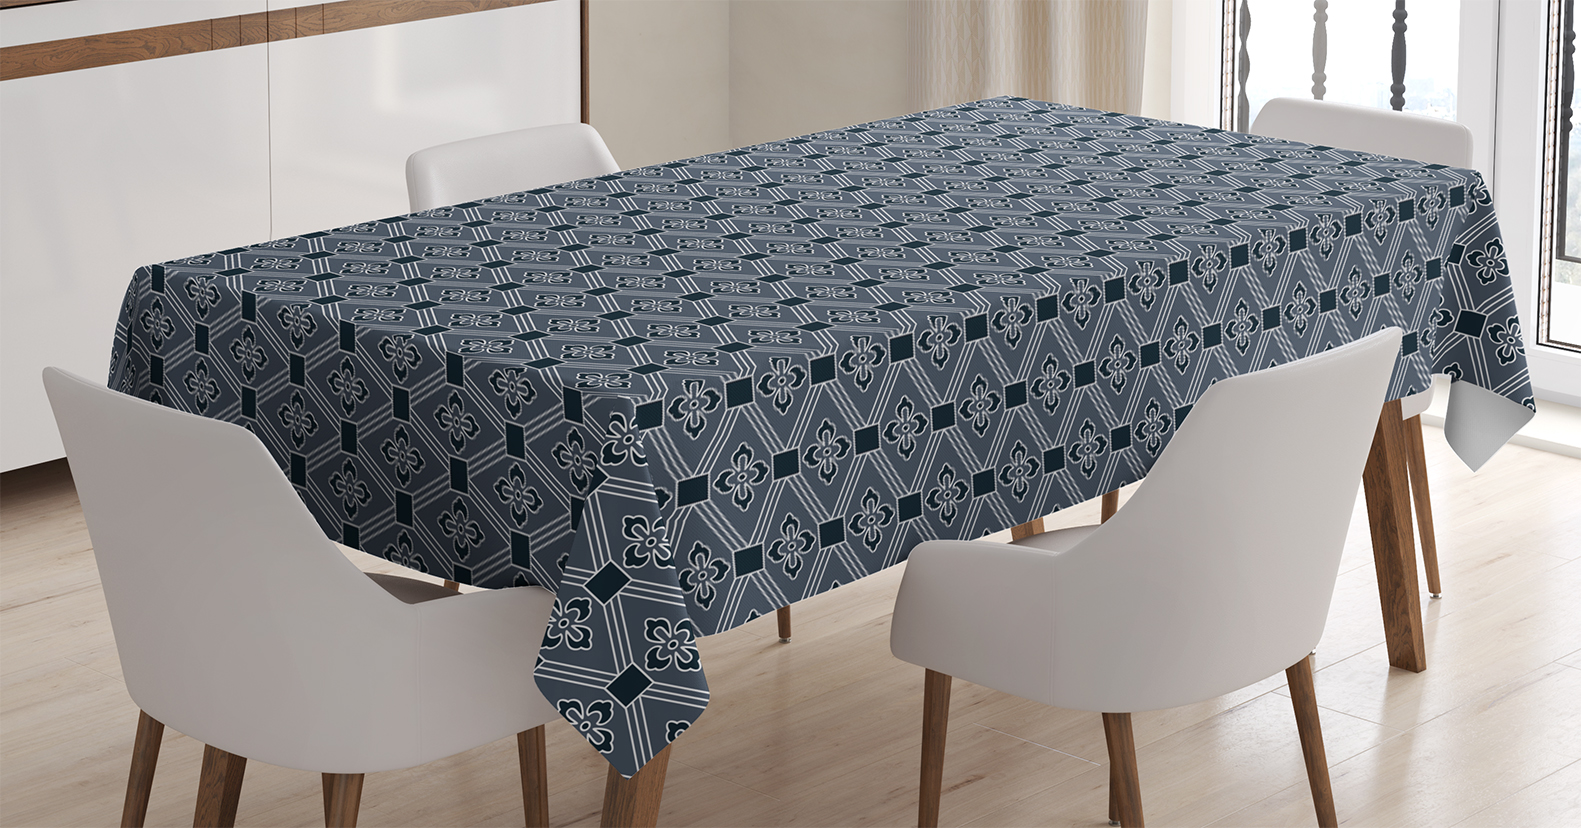 Amazing Japanese Tablecloth, Diamond Line Pattern With Squares And Abstract Graphic  Flowers, Rectangular Table Cover